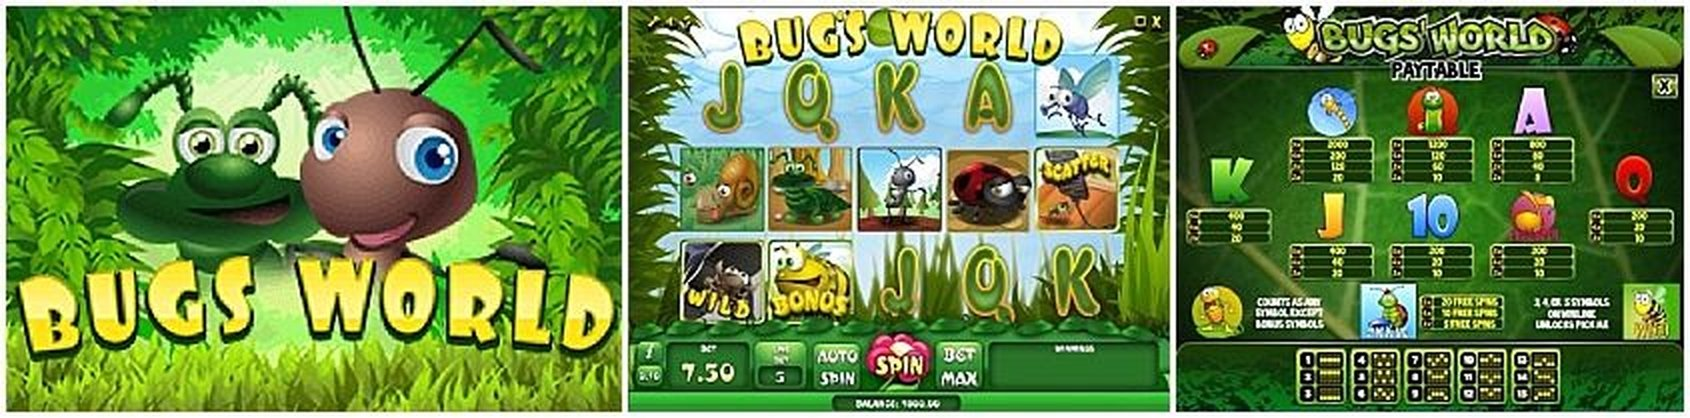 The Bug's World Online Slot Demo Game by iSoftBet